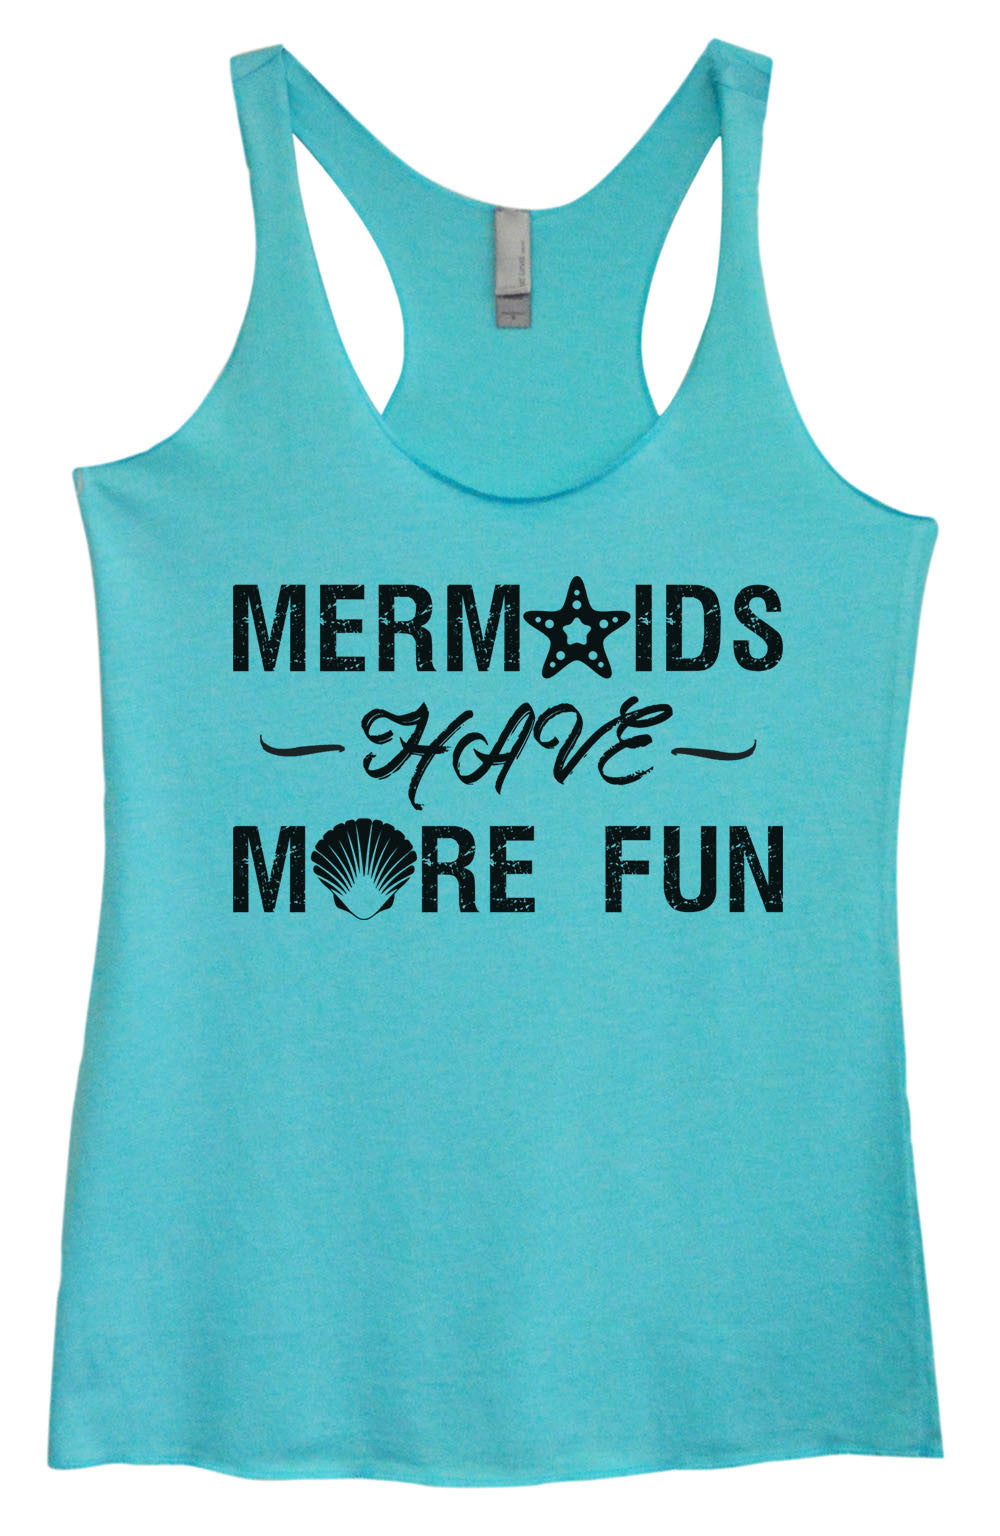 Womens Fashion Triblend Tank Top - Mermaids Have More Fun - Tri-1468 - Funny Shirts Tank Tops Burnouts and Triblends  - 3